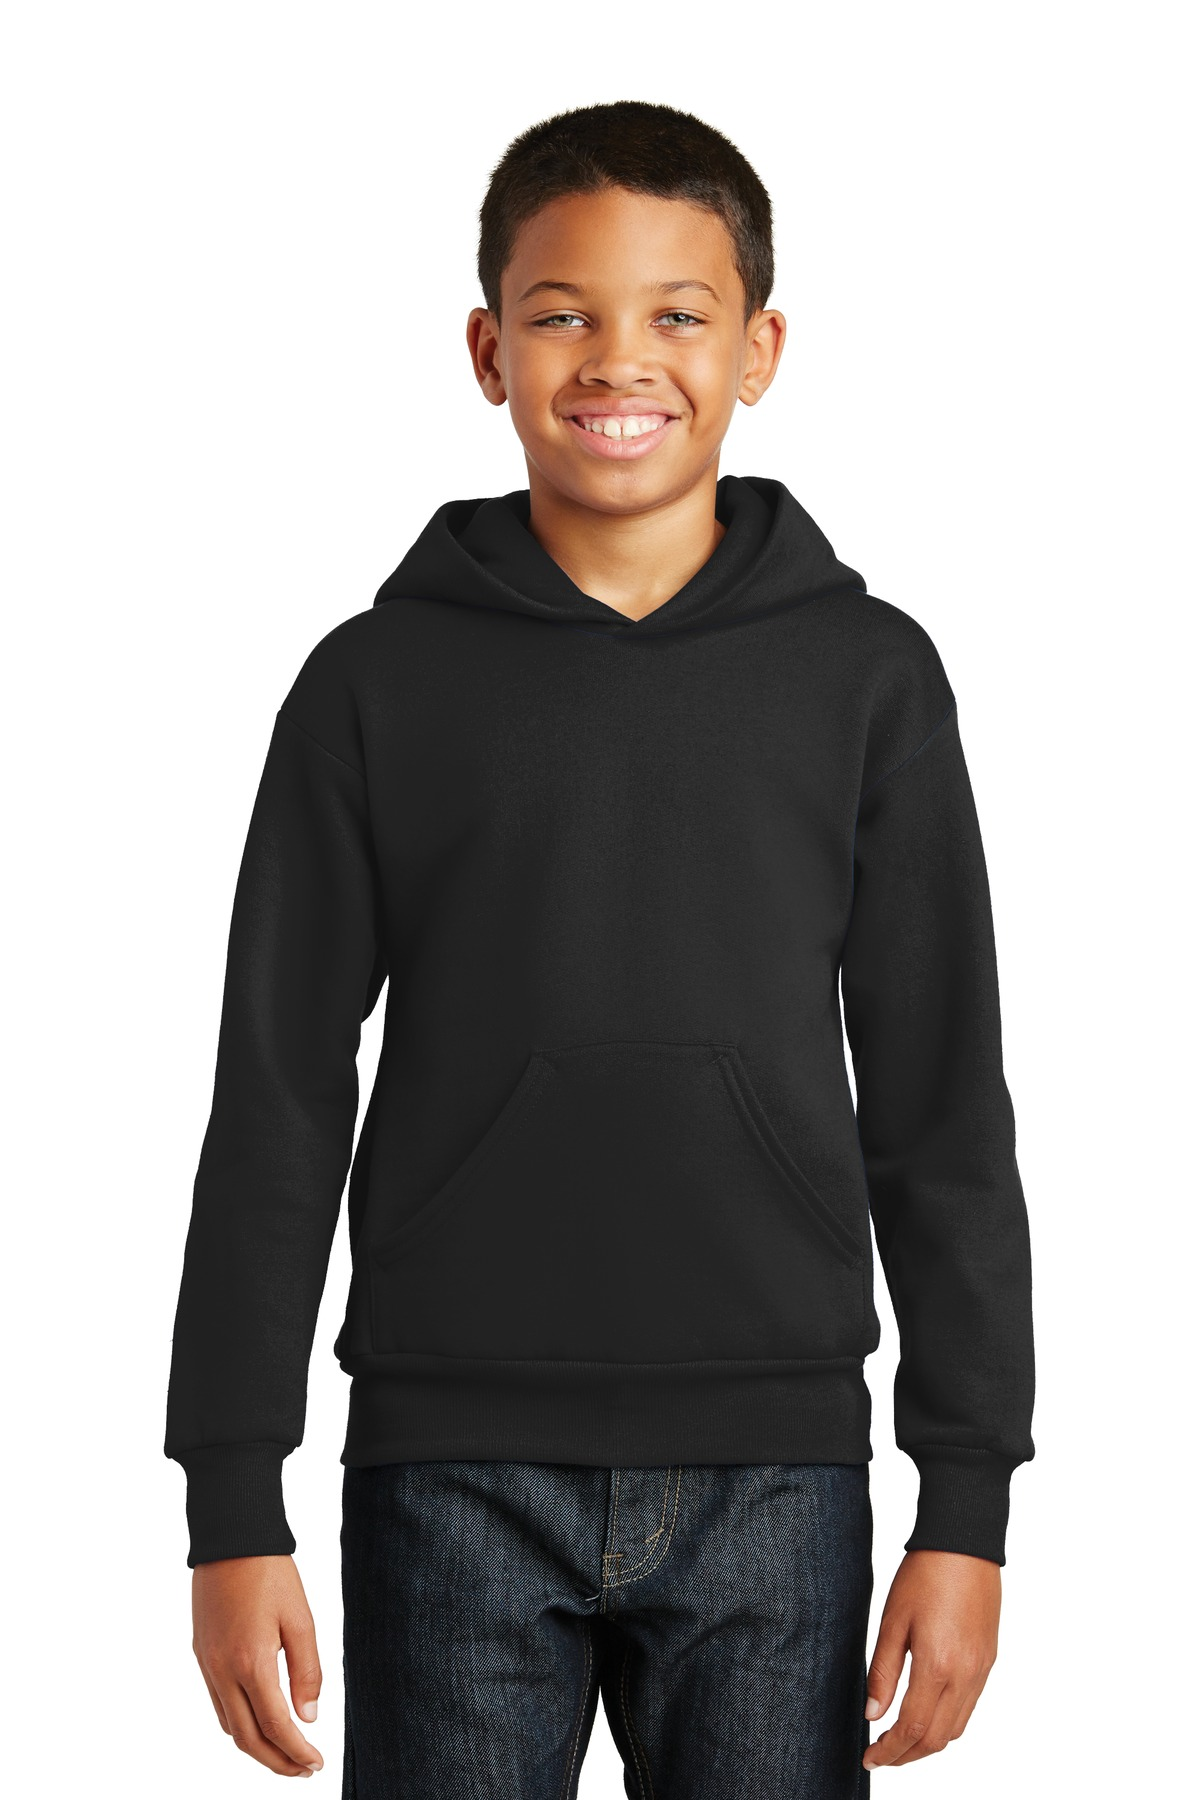 Hanes ®  - Youth EcoSmart ®  Pullover Hooded Sweatshirt.  P470 - Black